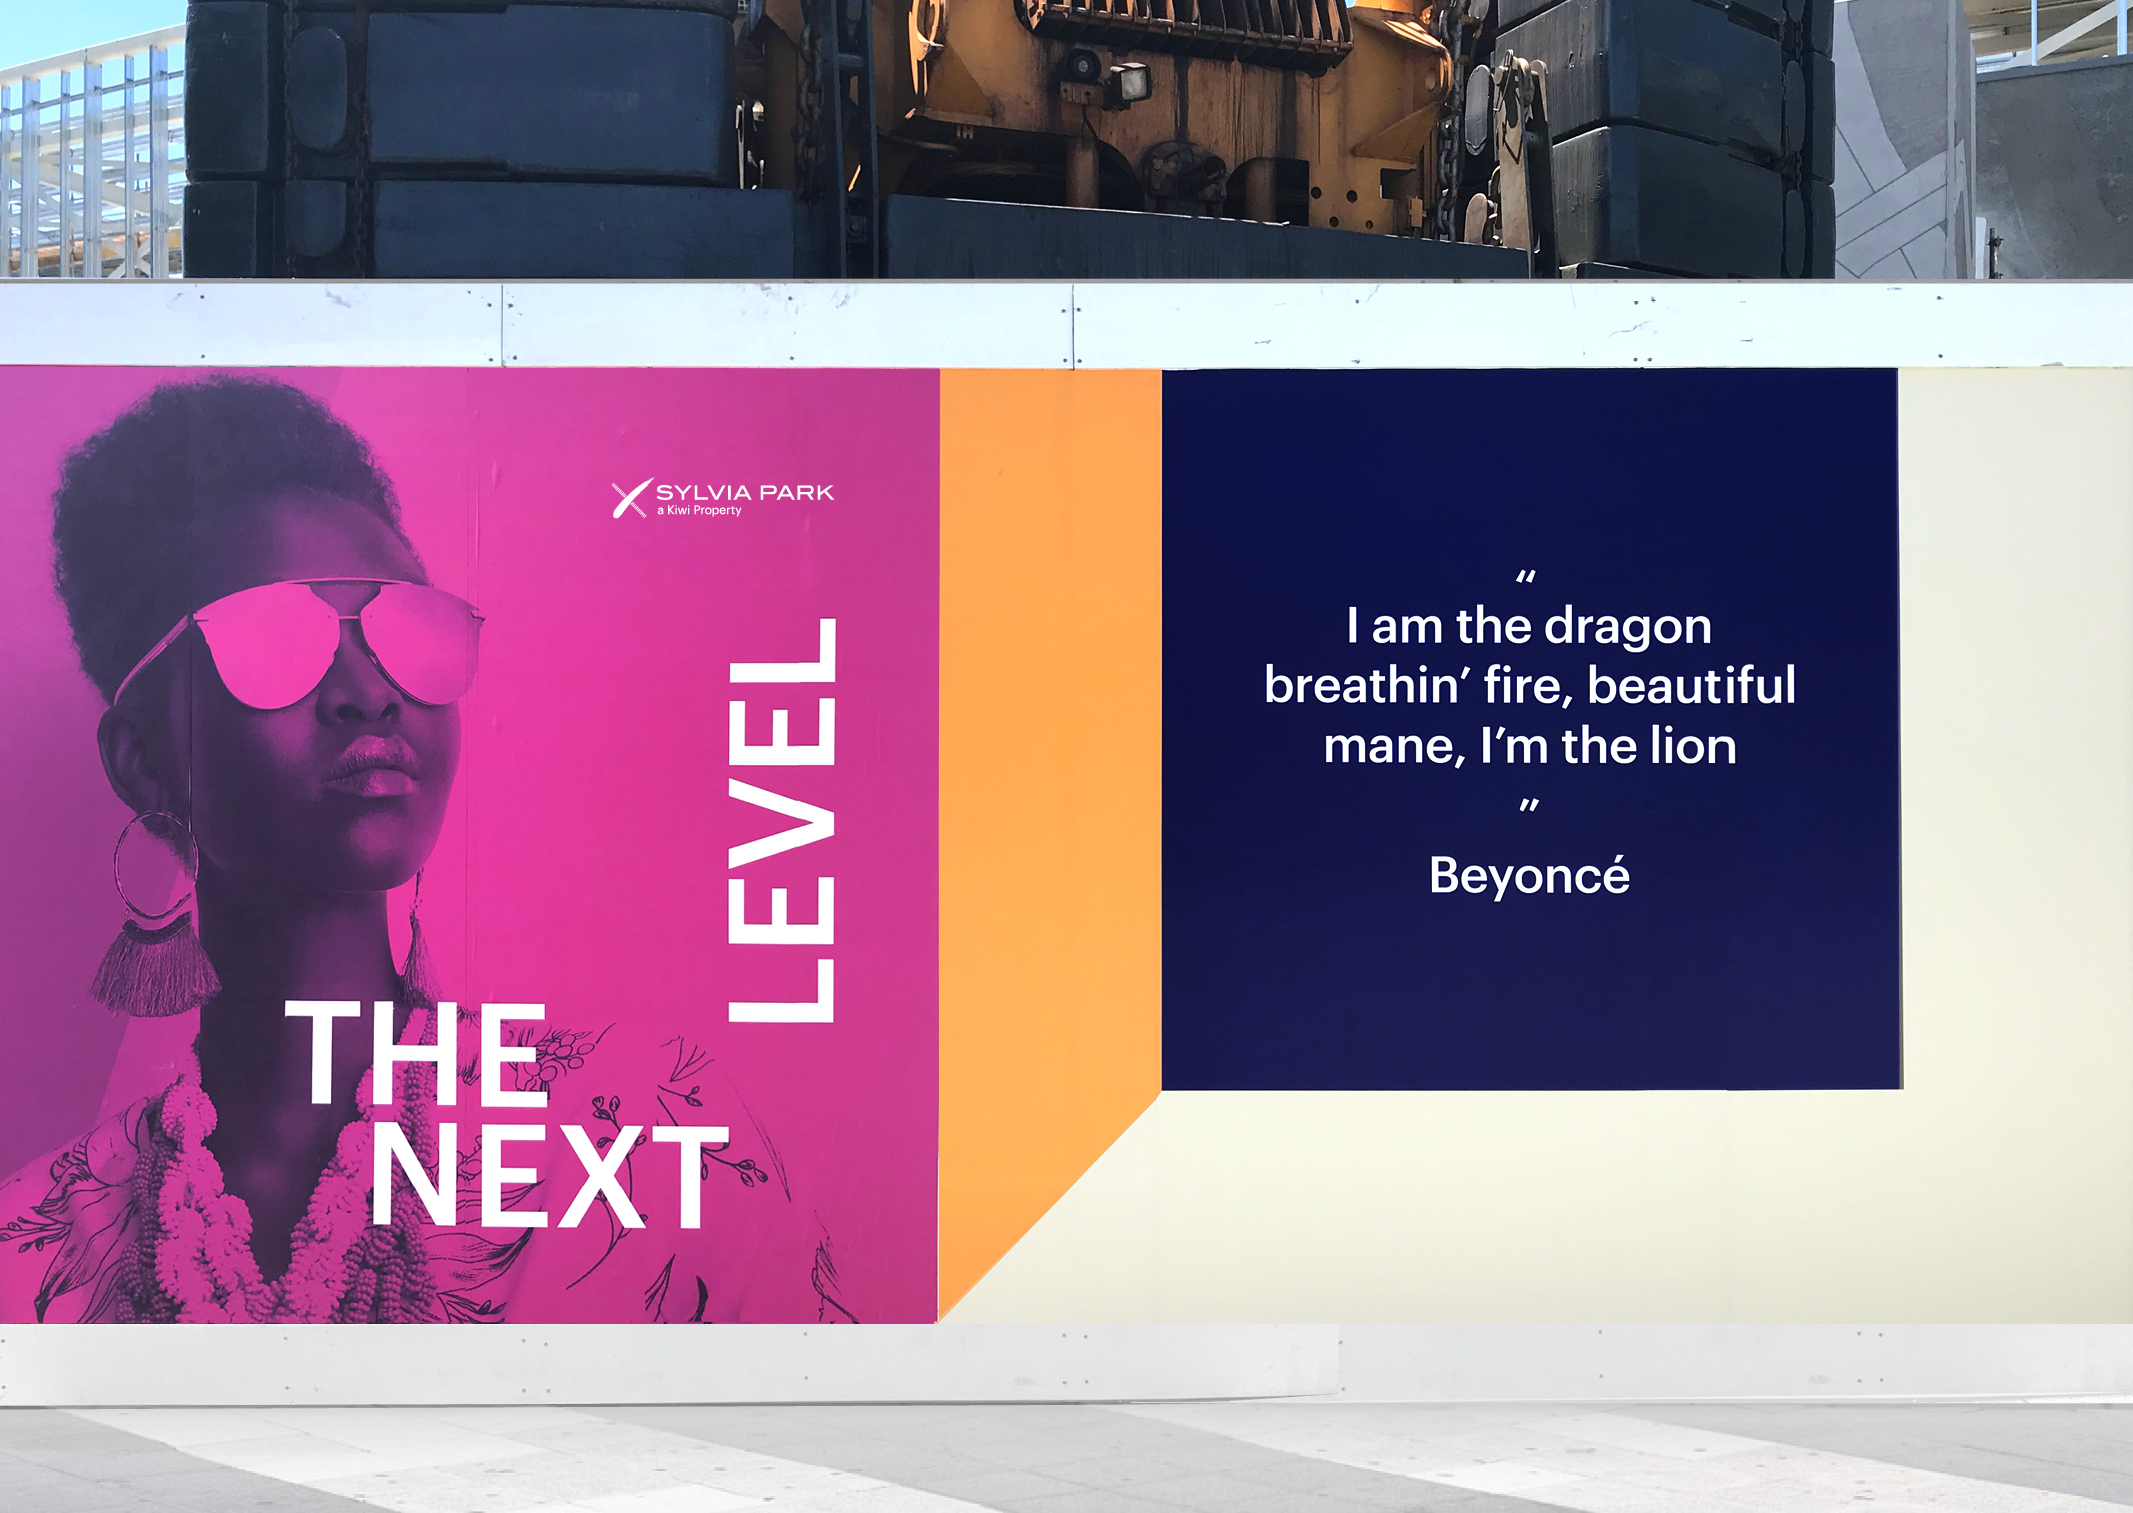 Close up of eye catching hoarding series for Sylvia Park Mall featuring Next Level Identifier and quote